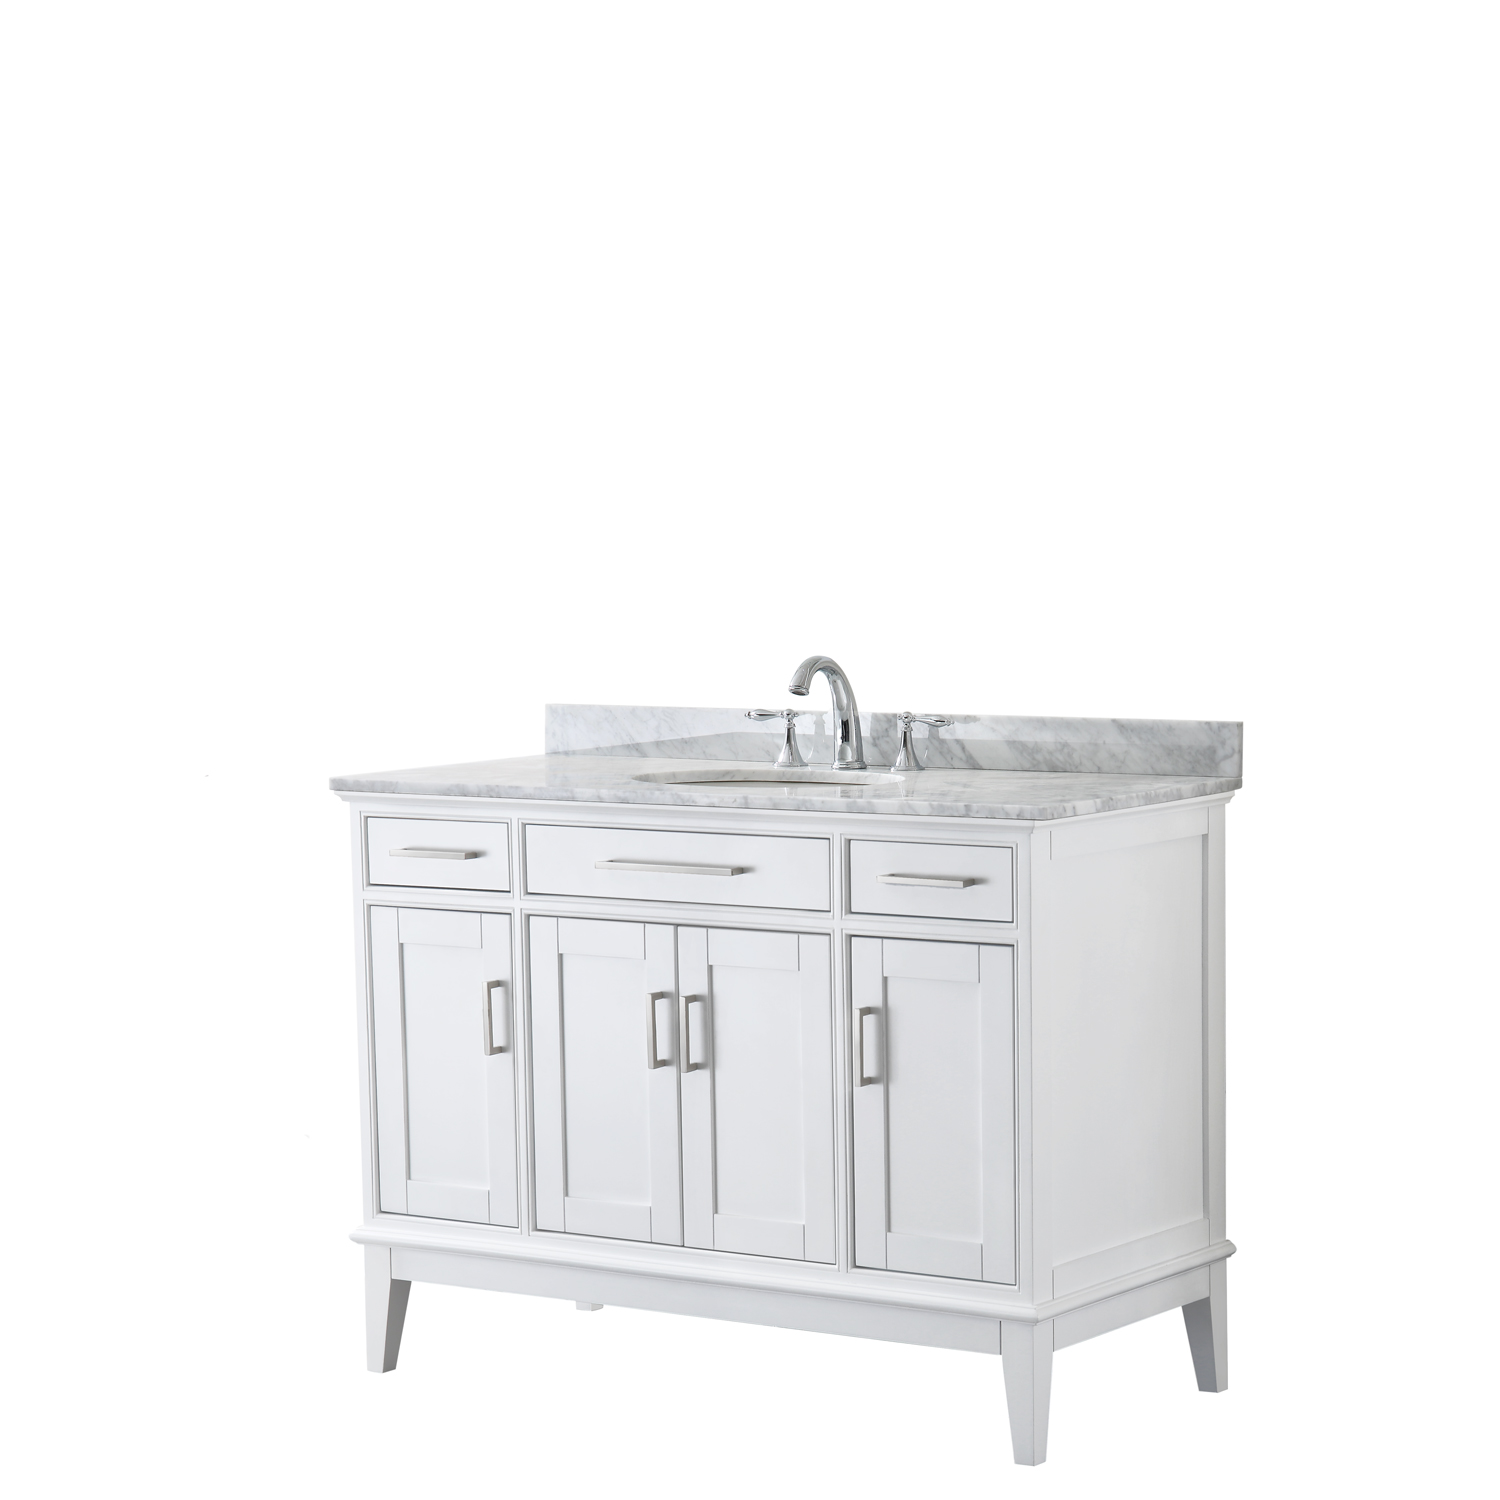 """Contemporary 48"""" Single Bathroom Vanity in White, White Carrara Marble Countertop with Undermount Sink, and Mirror Options"""